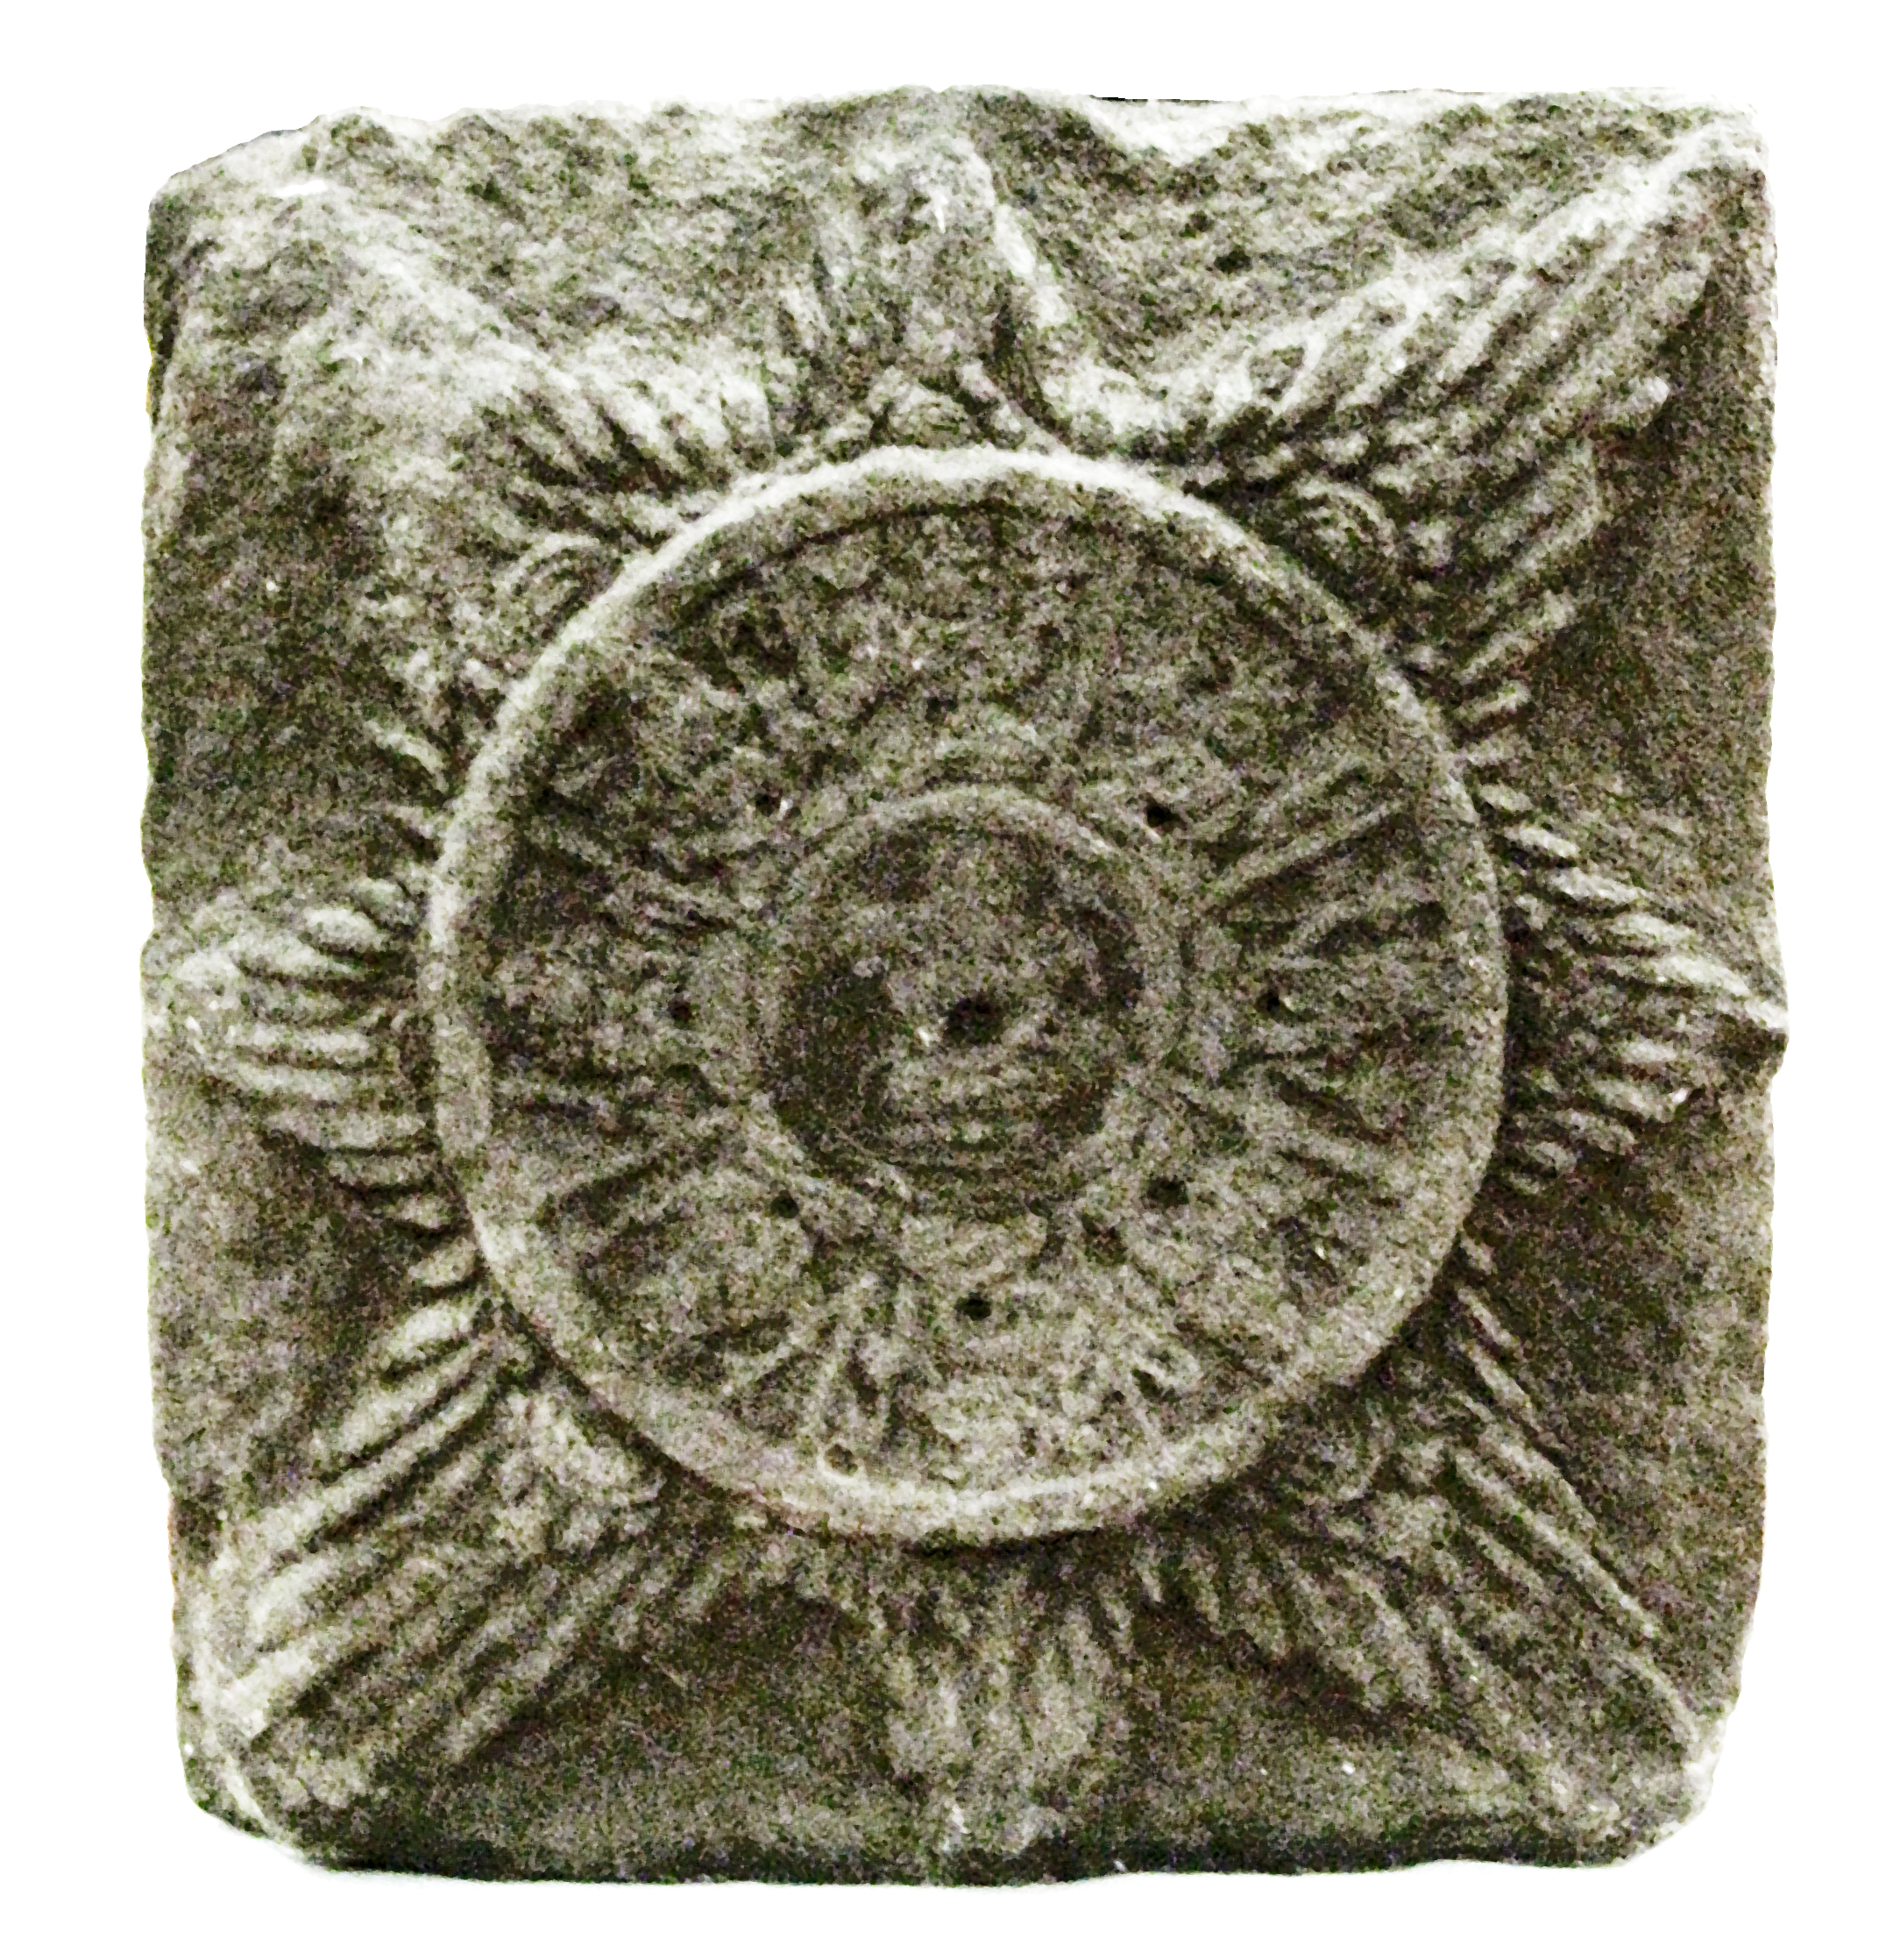 https://upload.wikimedia.org/wikipedia/commons/f/fe/Surya_Majapahit_2.jpg